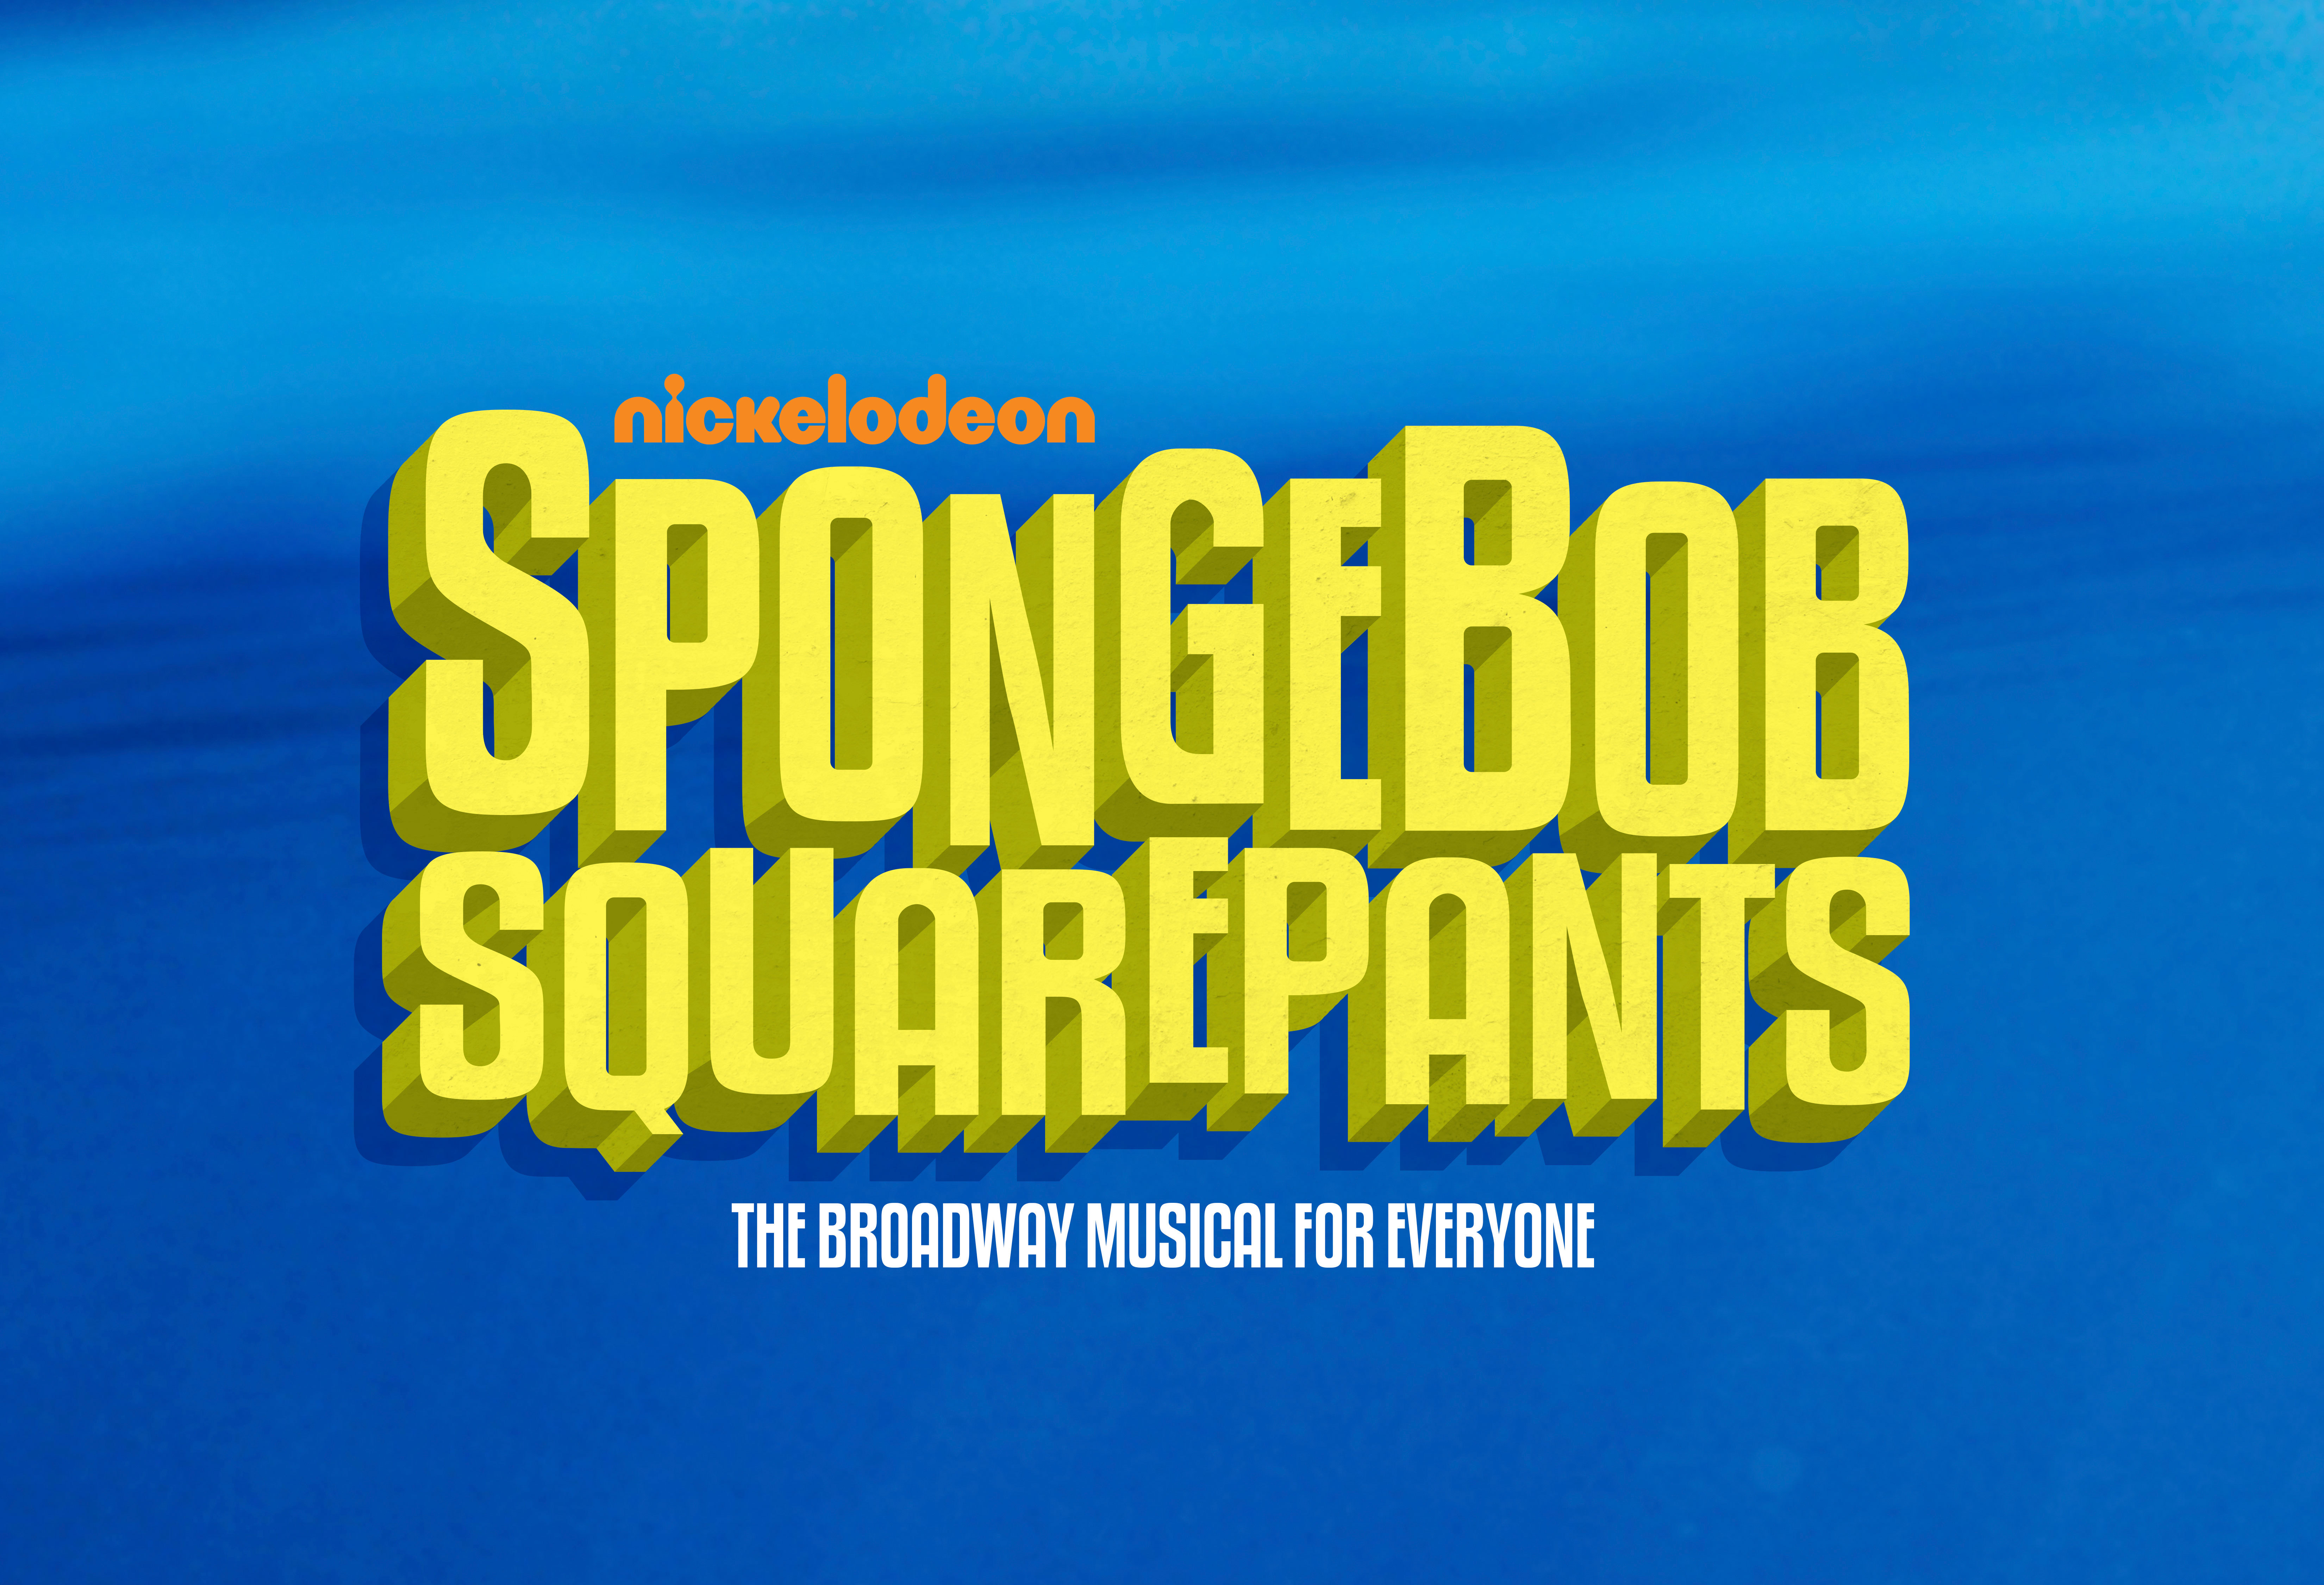 Spongebob Squarepants Will Open On Broadway At The Palace Theatre Hands Free Wiring Diagram 2010 Mini Cooper Follow Bbb Twitter Or Instagrambbbway Facebook Click Here To Download Photos Username Press Password